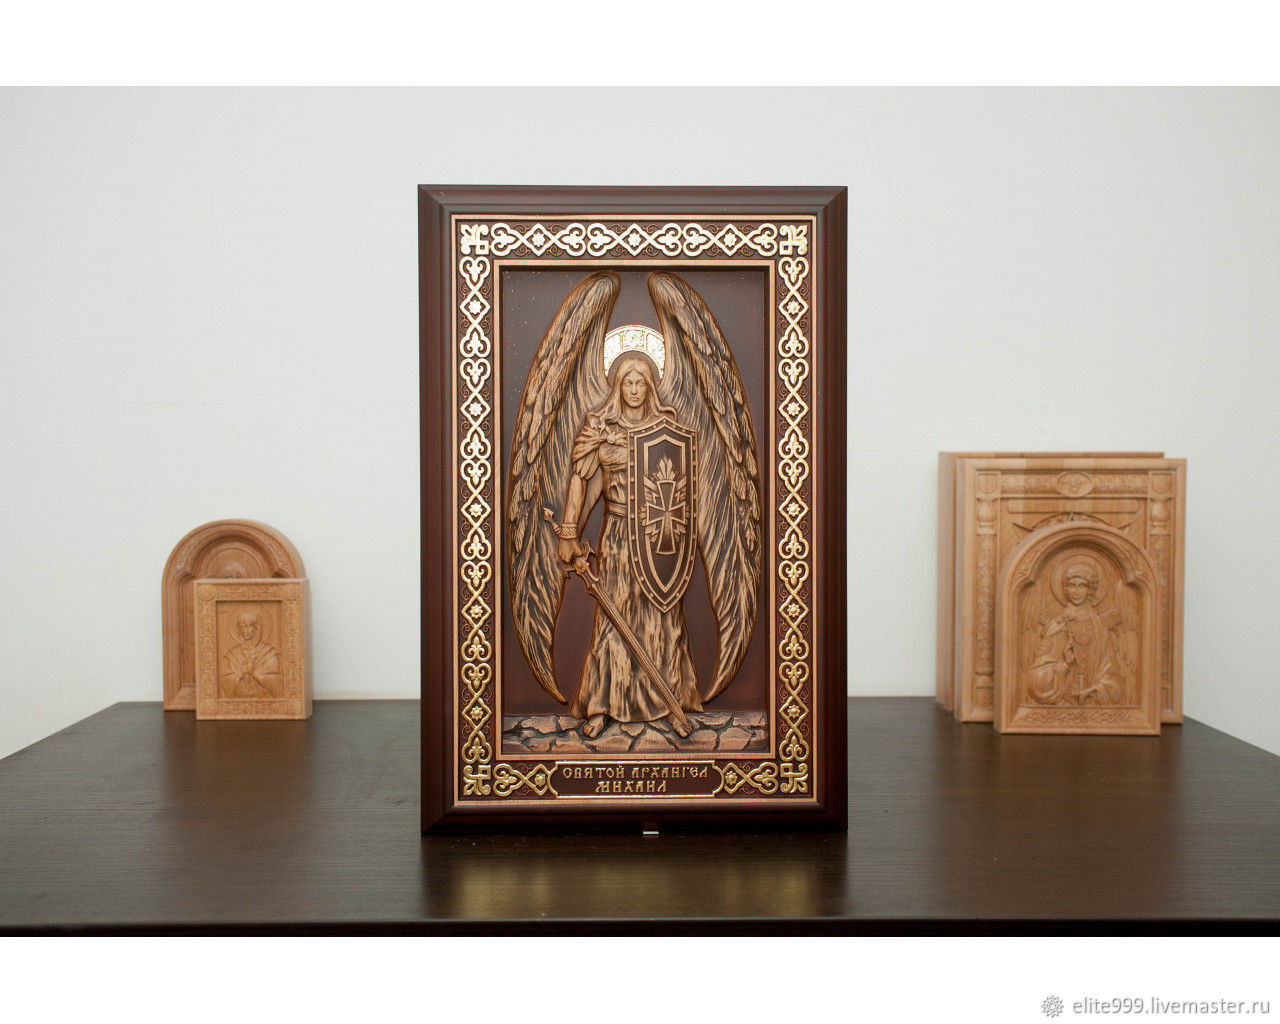 Icon carved by Archangel Michael (potal) size 400x600mm, price 11000r., in stock t. 89236905757, Whats App 89087961144 Produced in Russia, made with a soul!